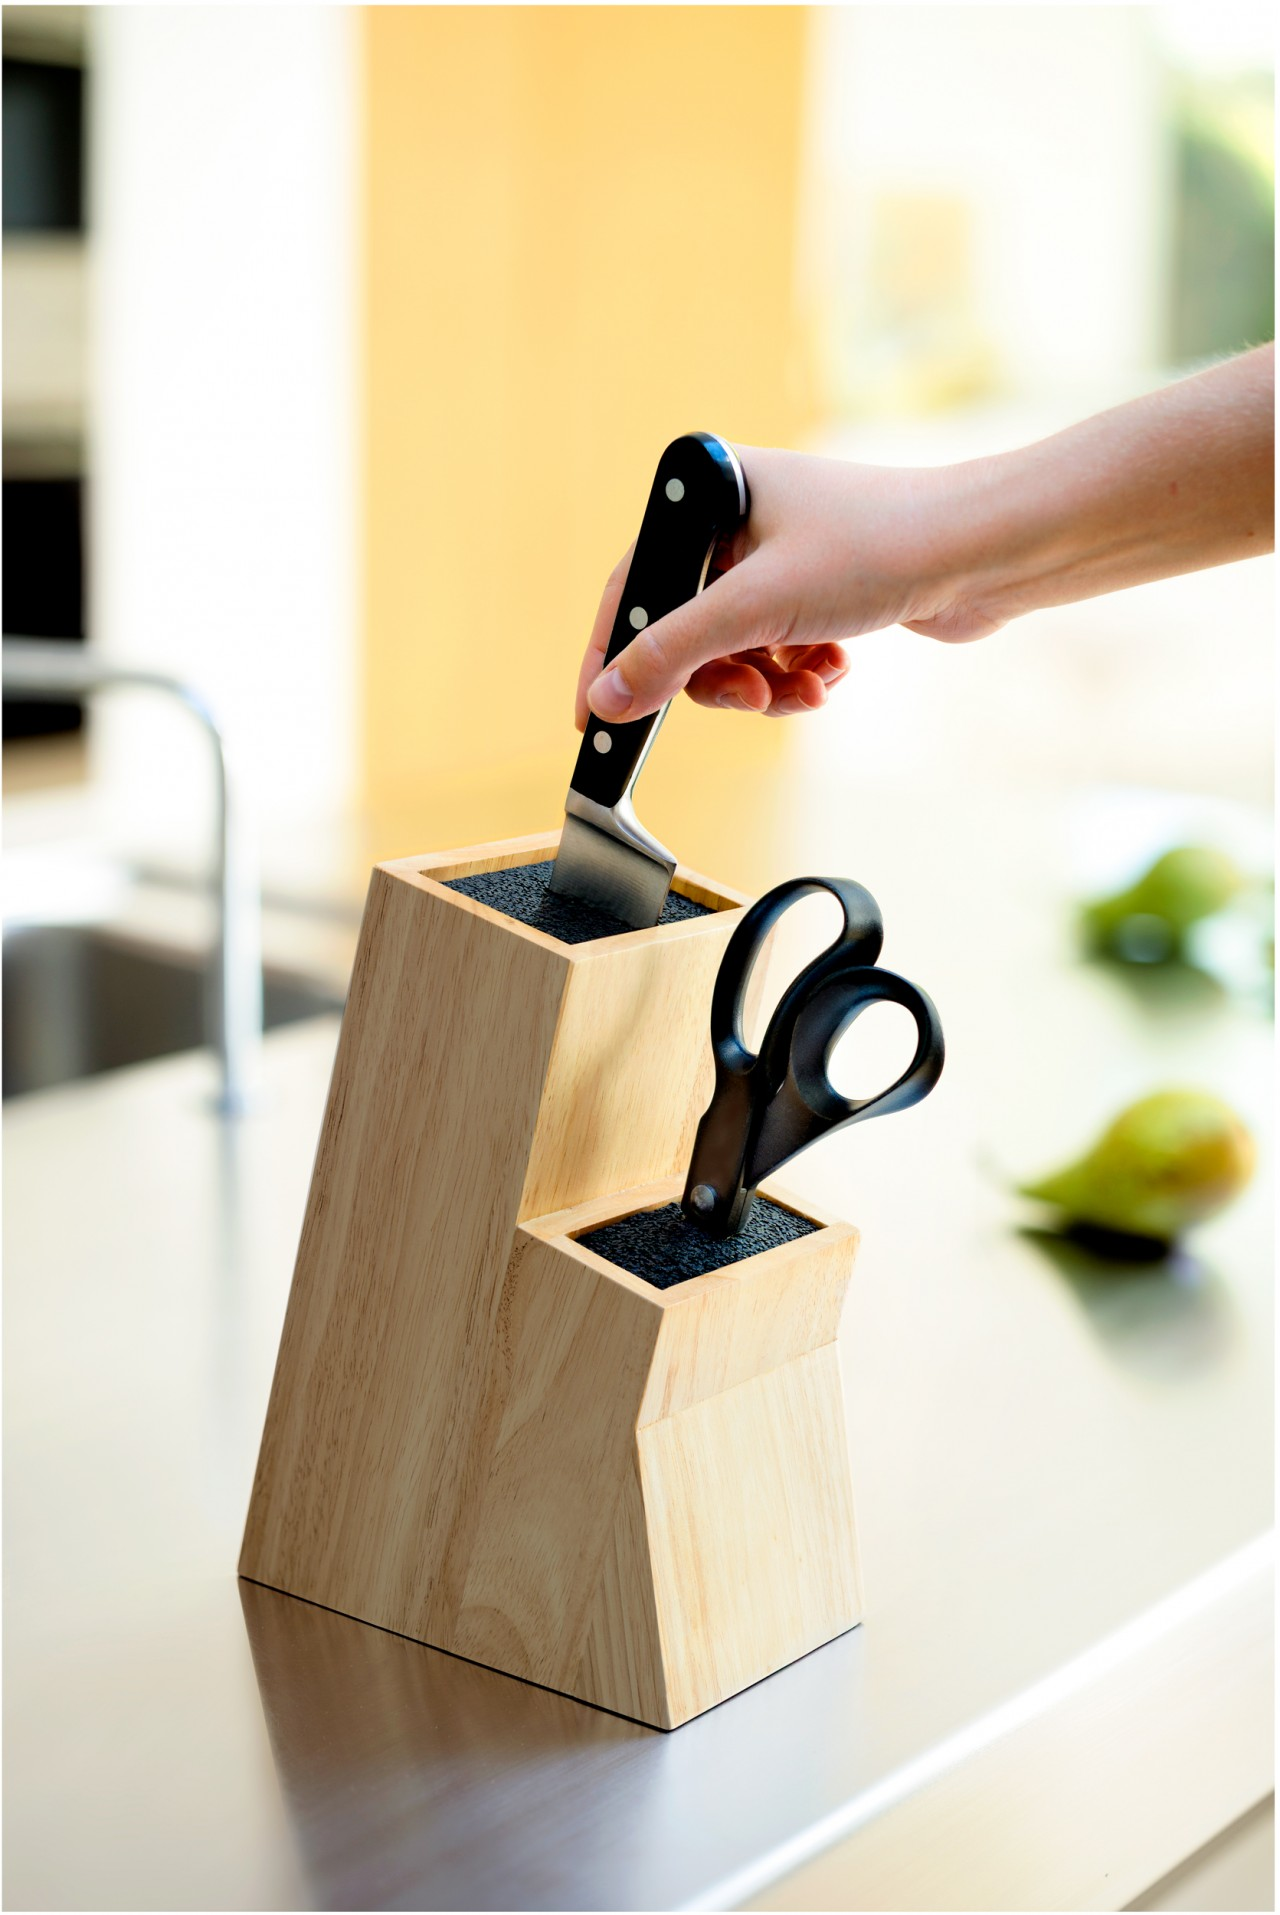 Peter Marshall Photography Knife block